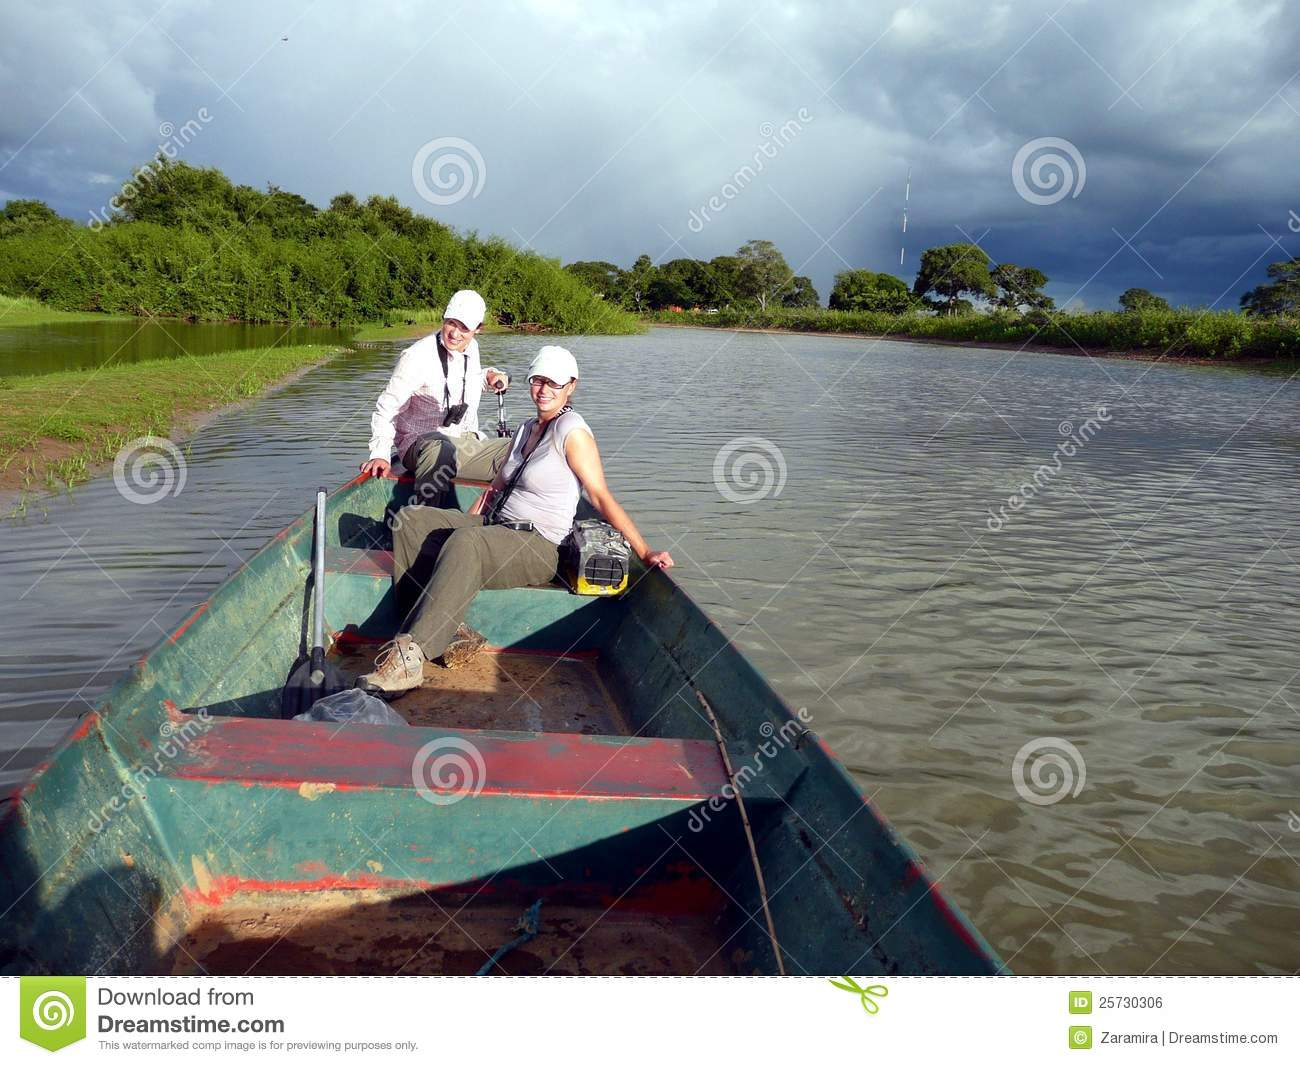 People fishing royalty free stock image image 25730306 for Videos of people fishing